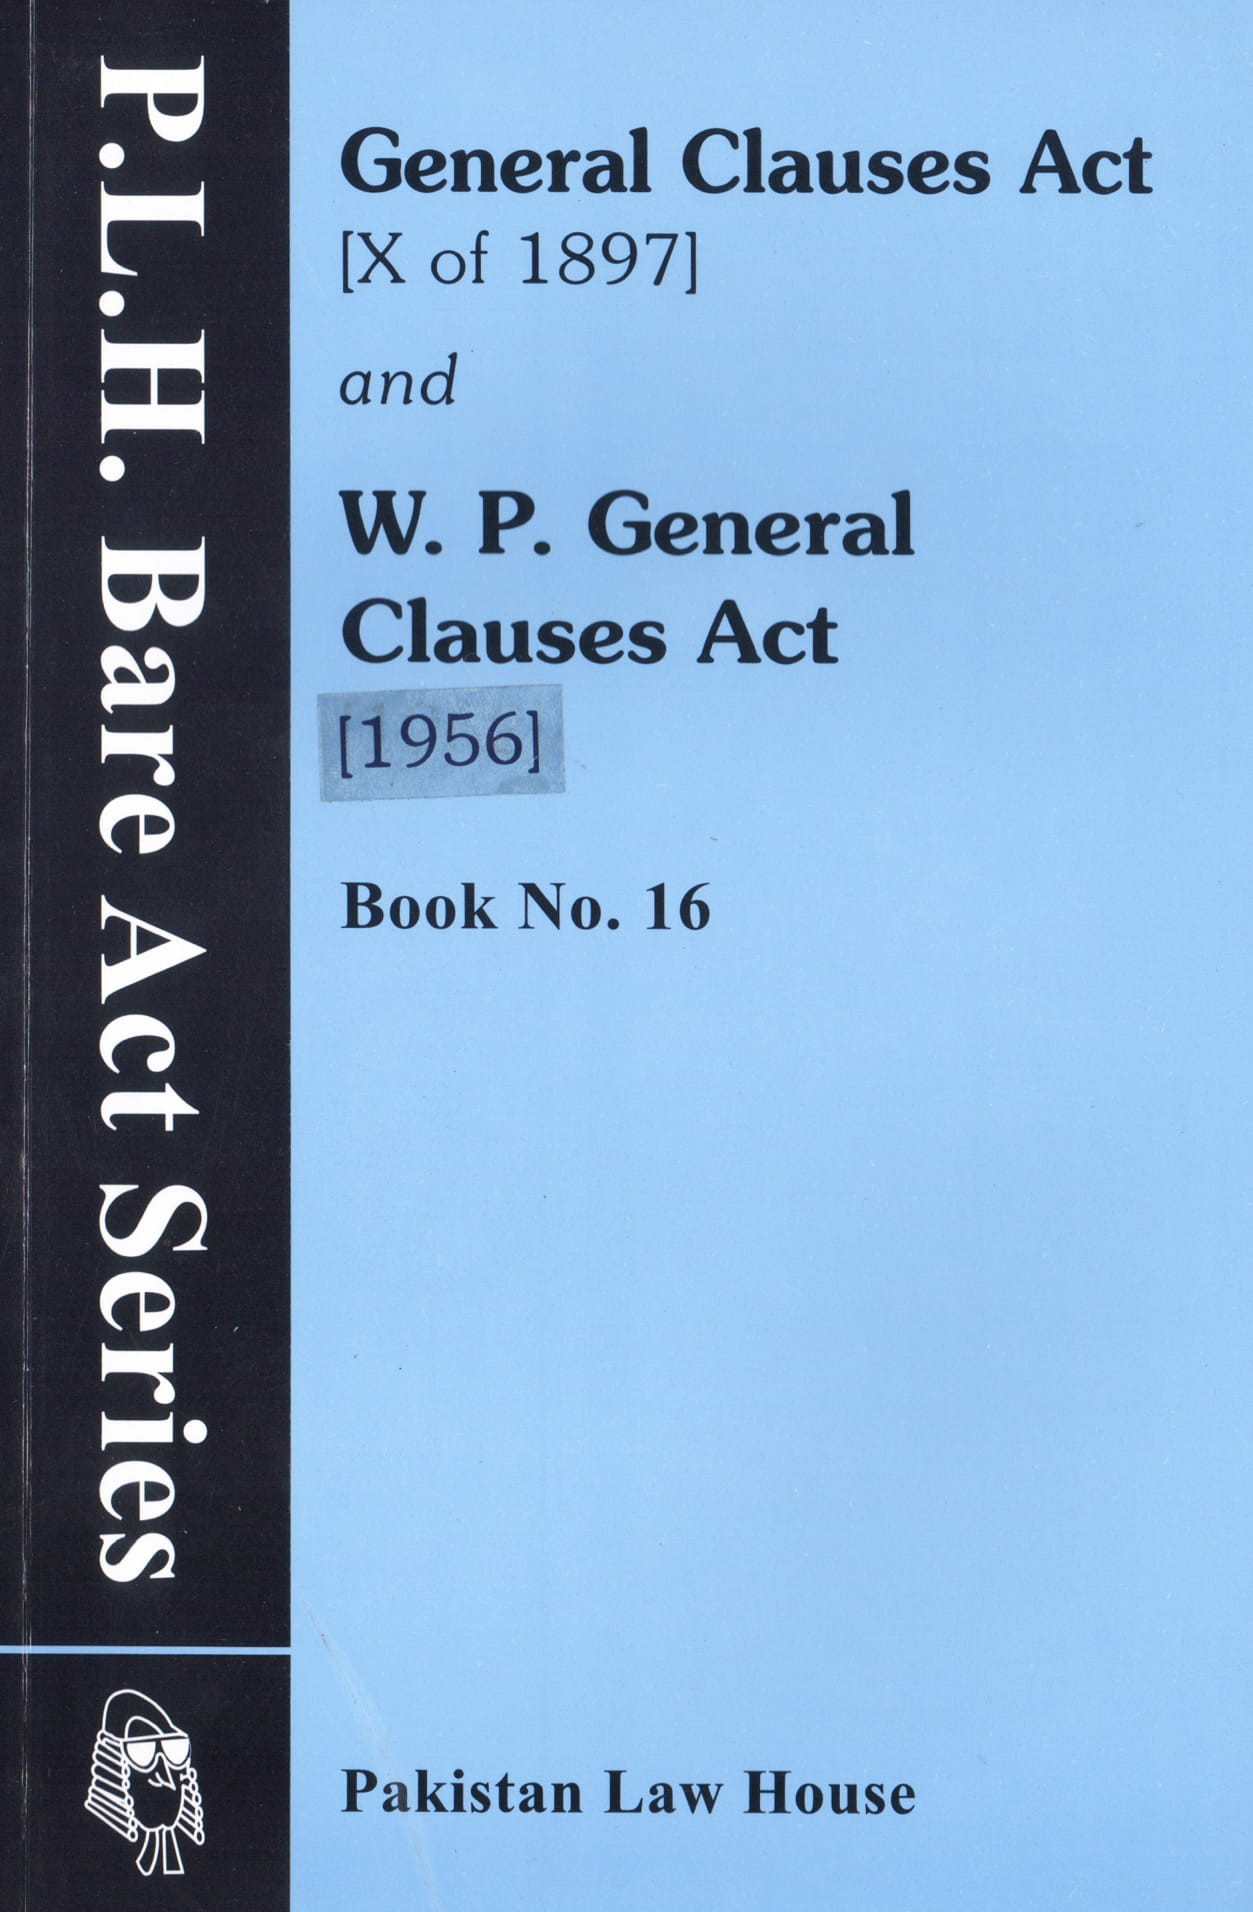 General Clauses Act, 1897 And WP General Clauses Act, 1956